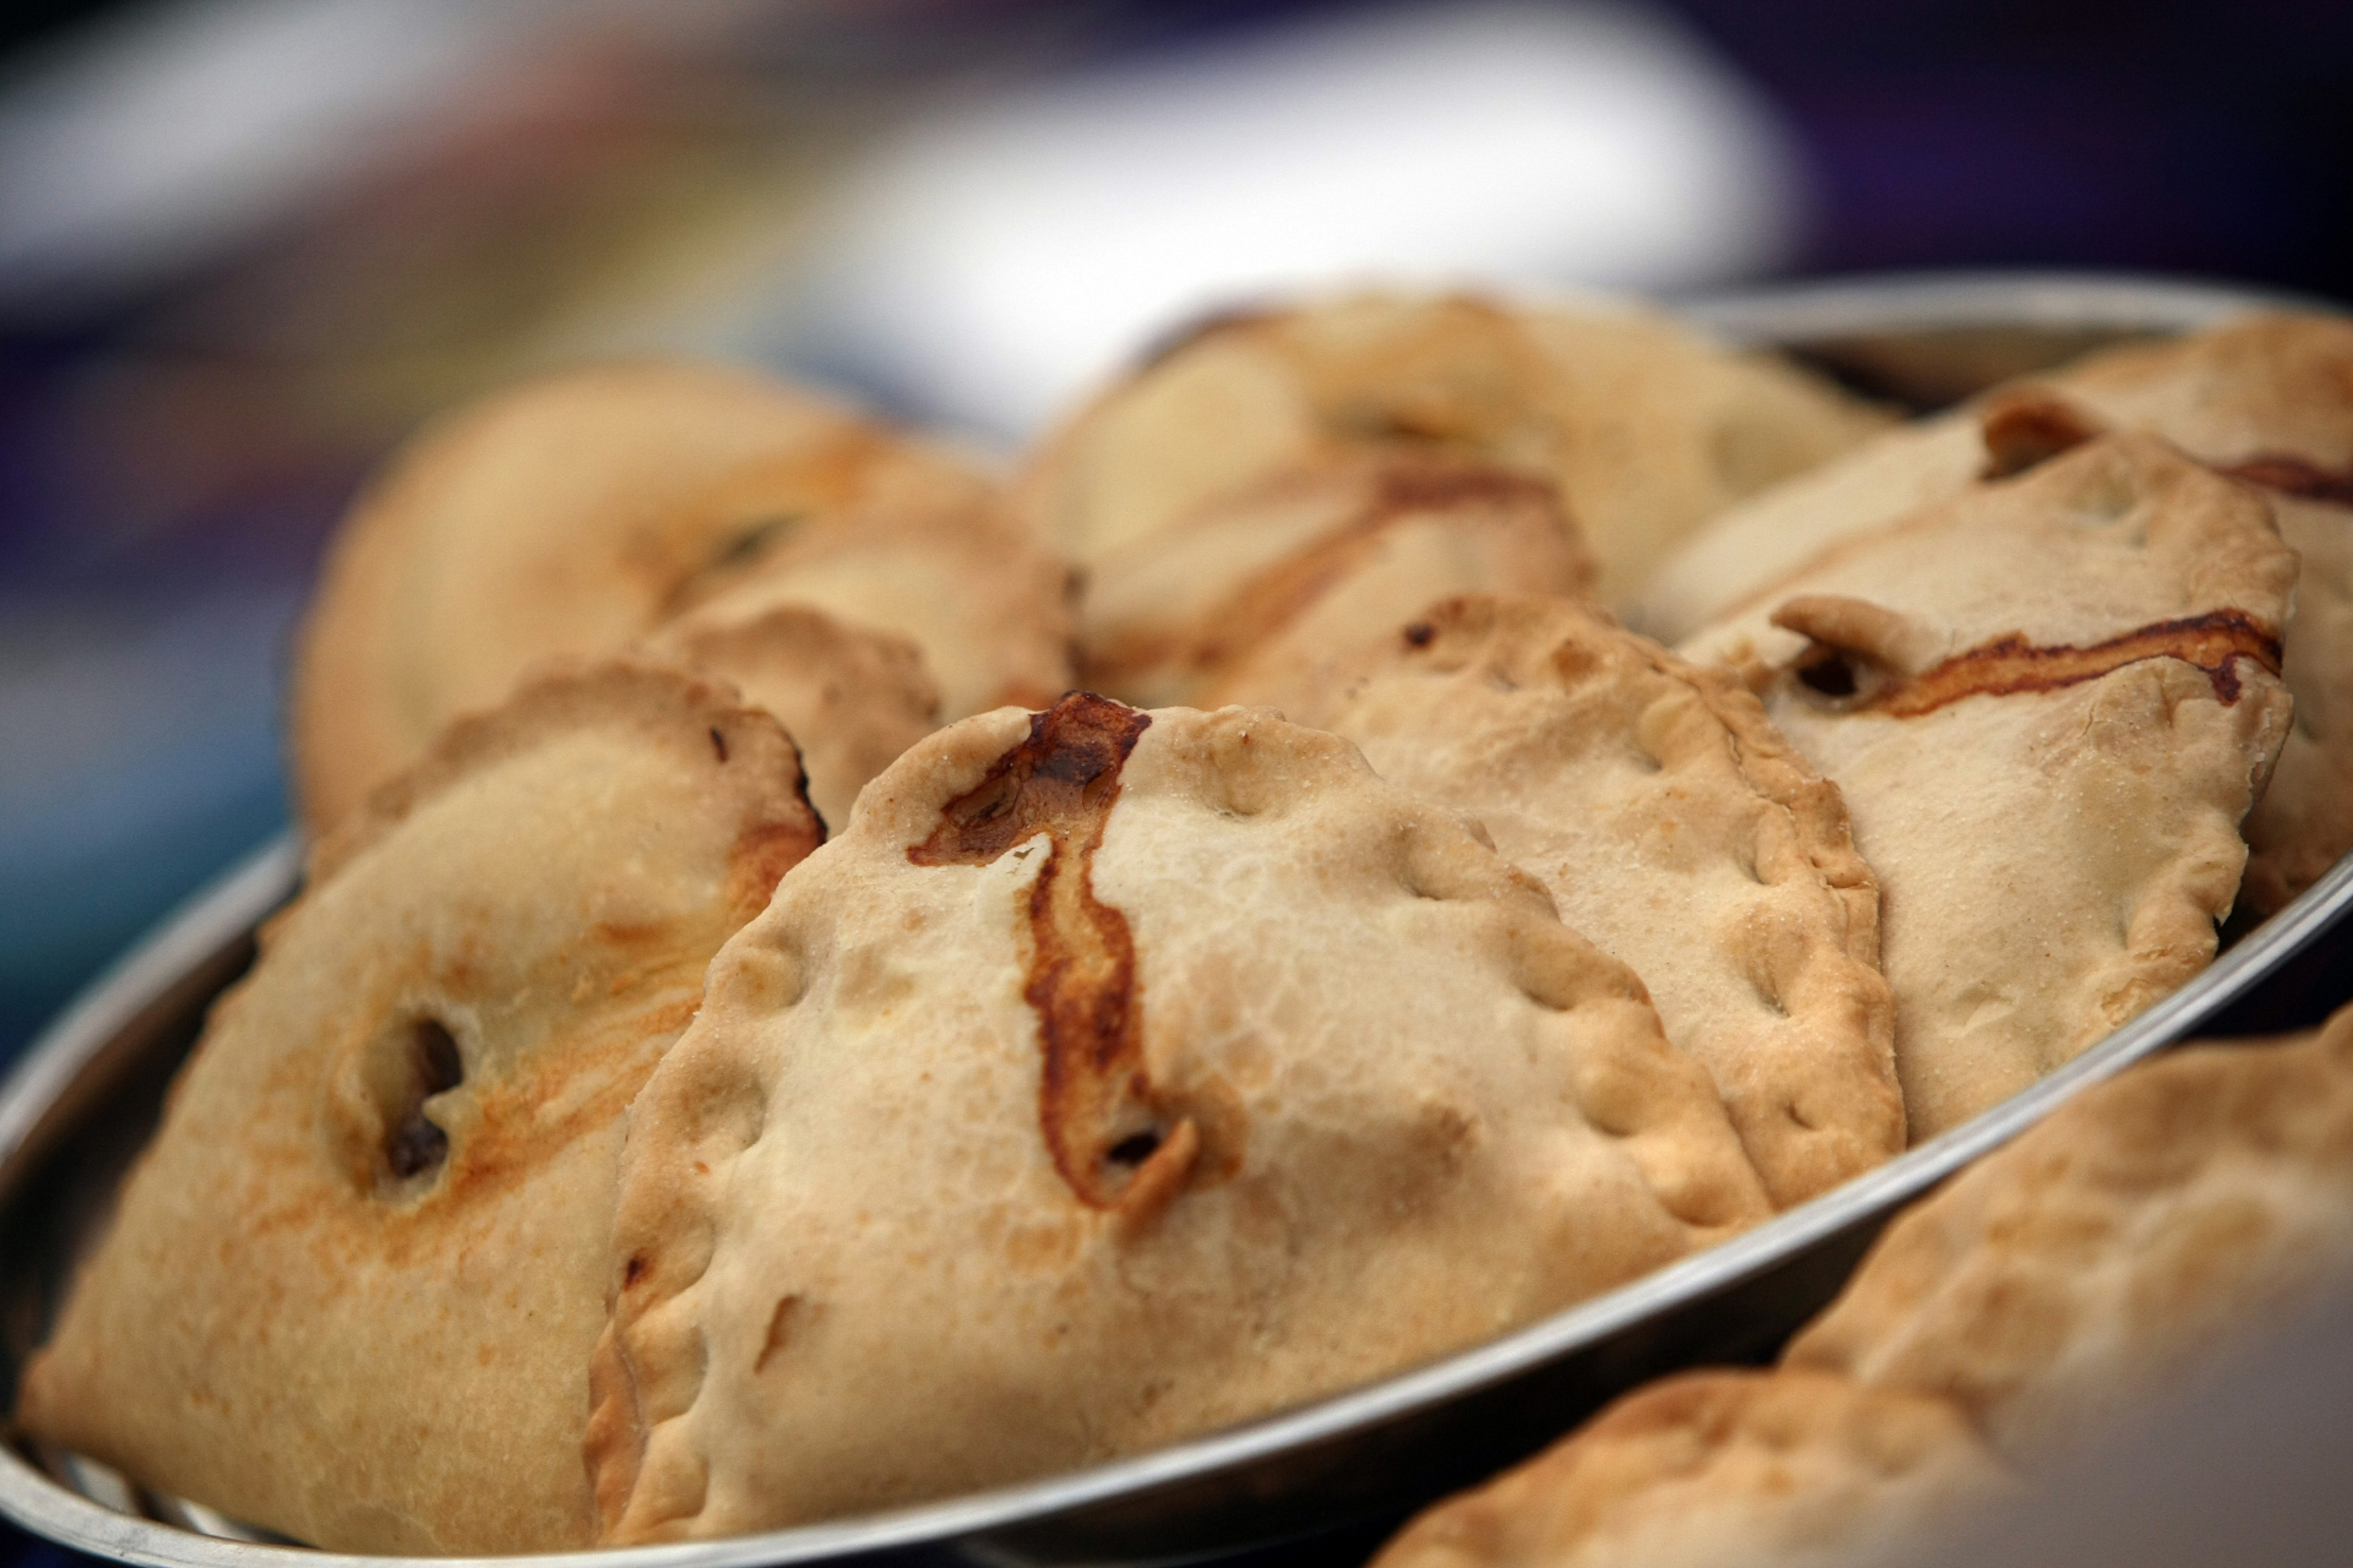 The Forfar bridie is part of Scotland's food and drink industry making a major contribution to the nation's economy.